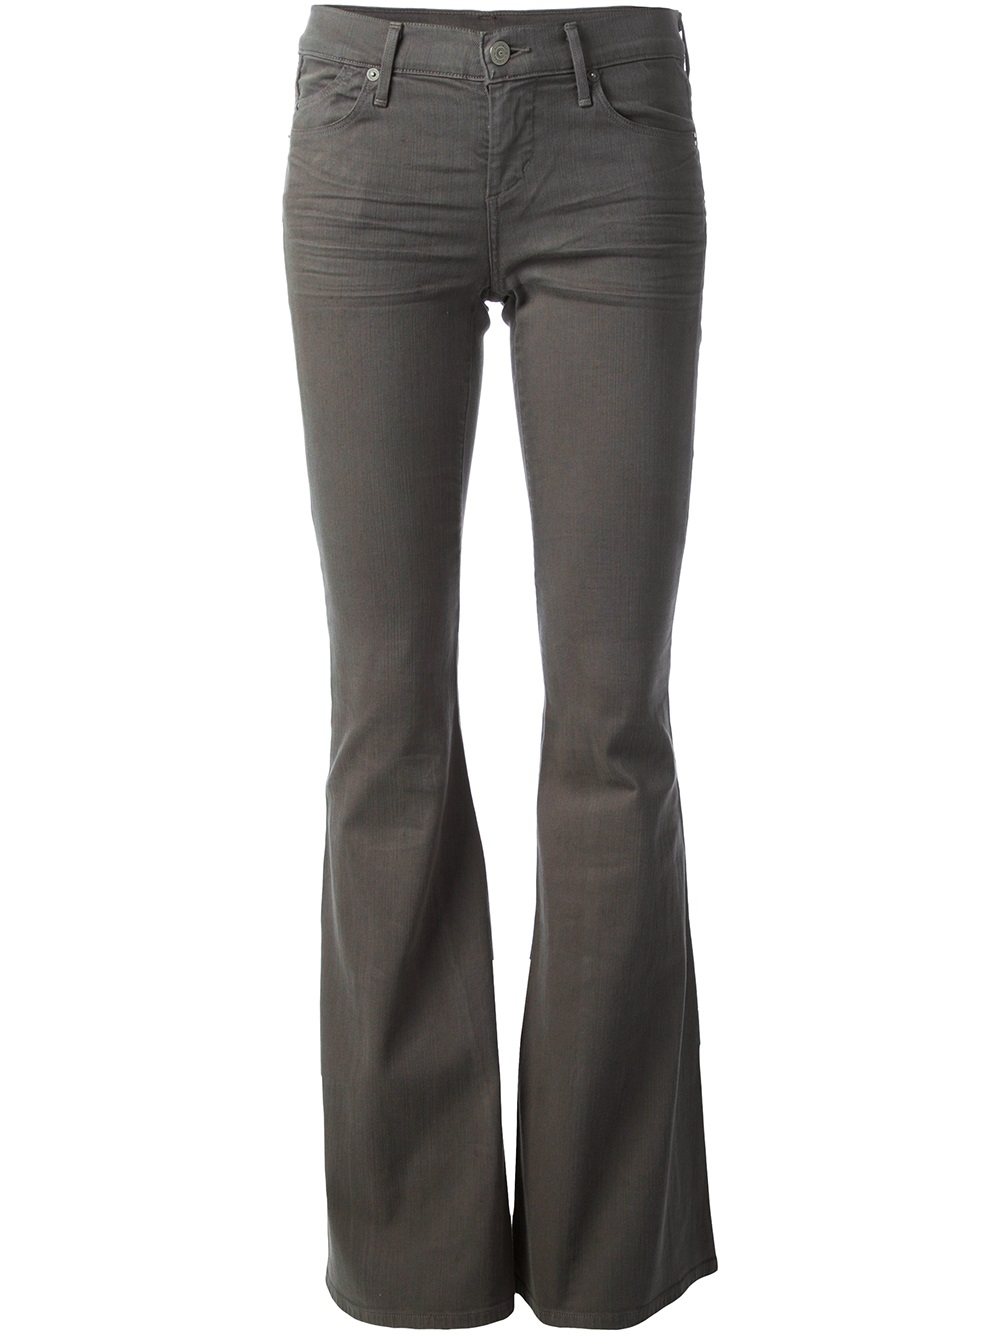 Citizens of humanity Skinny Flared Jeans in Gray | Lyst